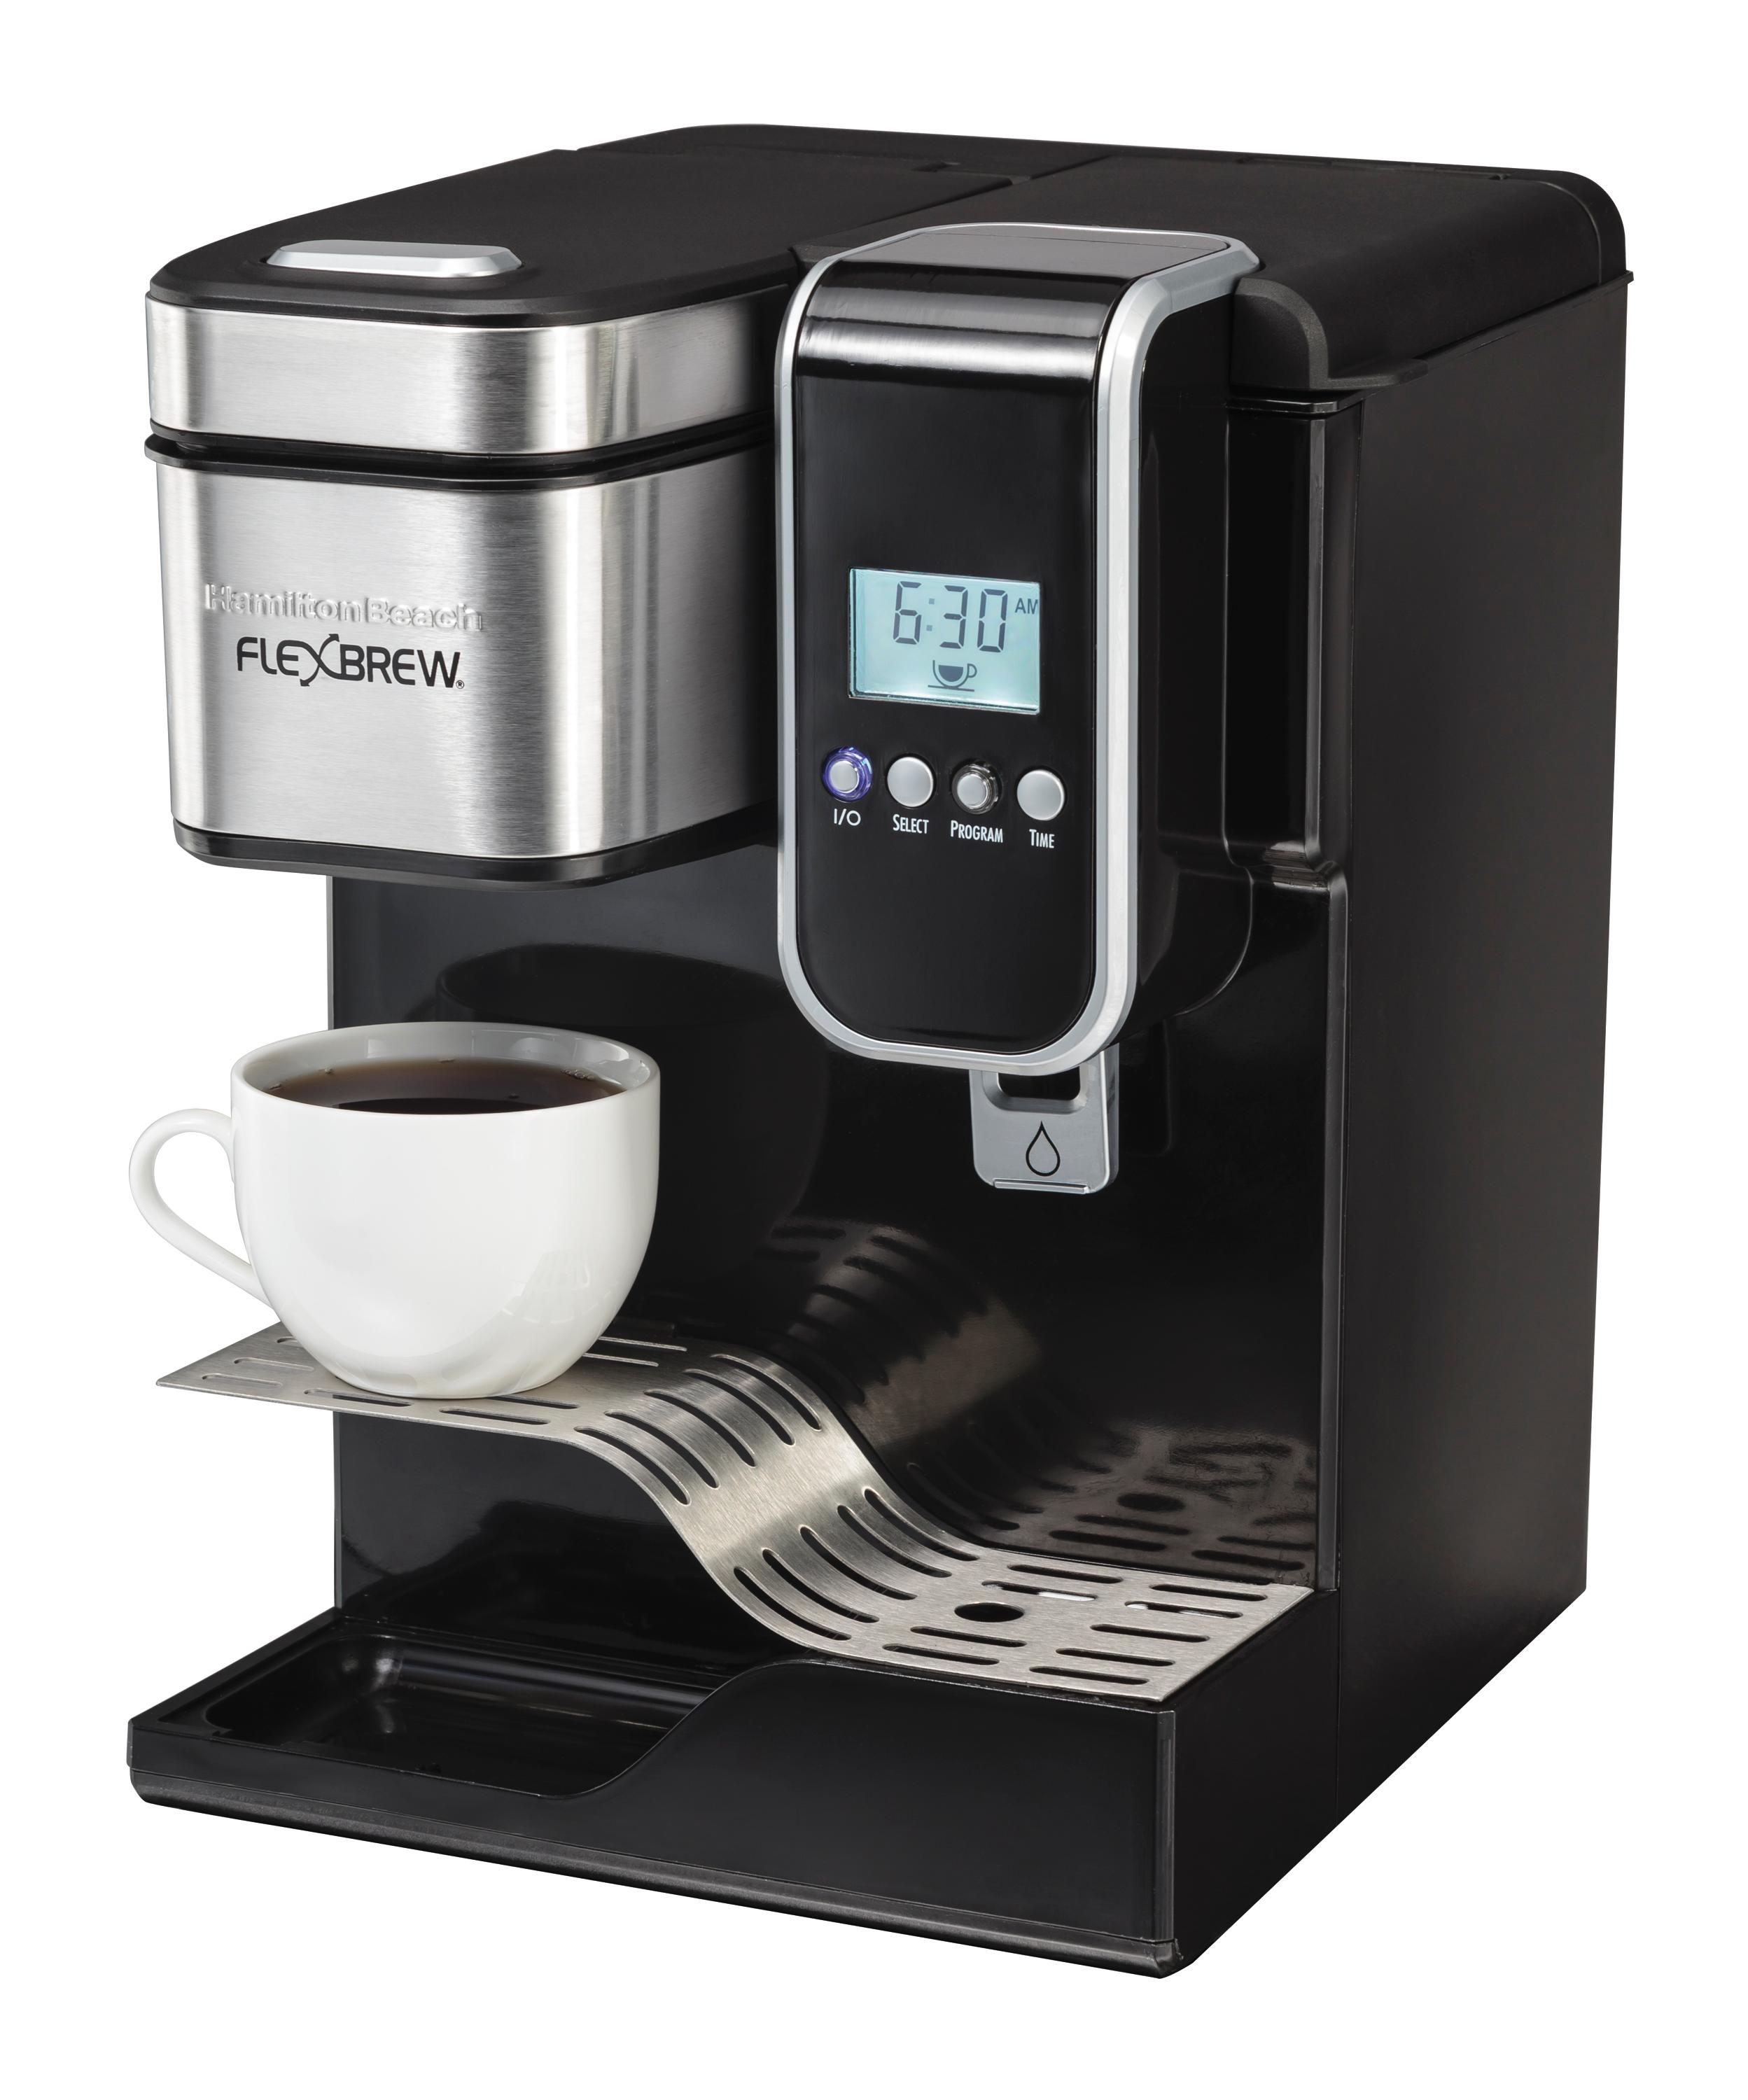 Coffee Maker With Water Line : Amazon.com: Hamilton Beach Single-Serve Coffee Maker, Programmable FlexBrew with Hot Water ...